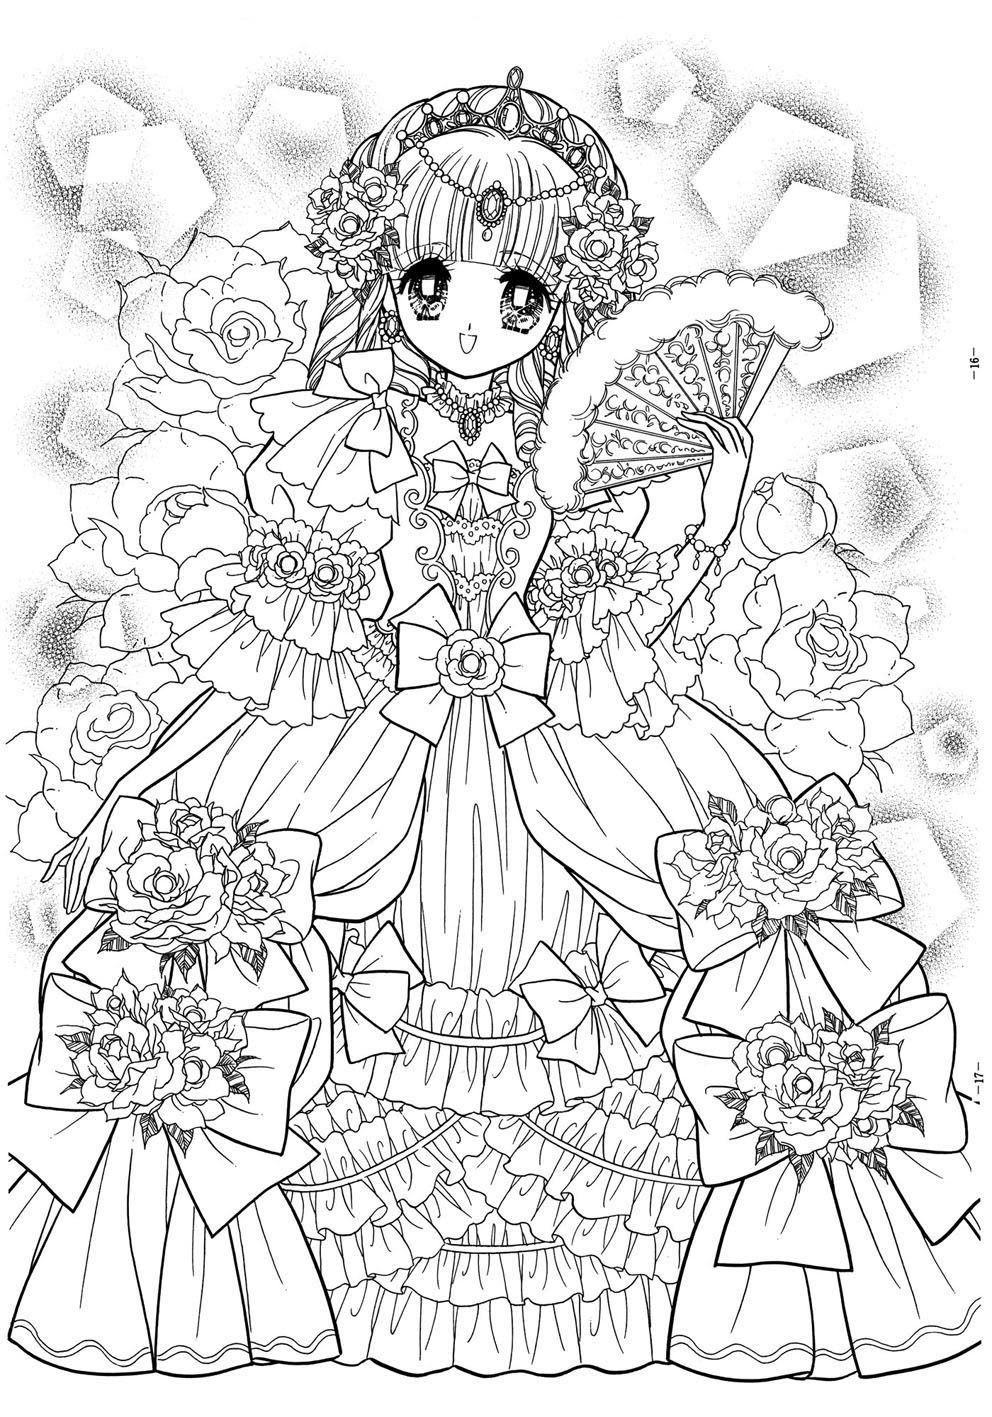 photo PrincessWorldB15.jpg | Colouring Pages. | Pinterest | Coloring ...